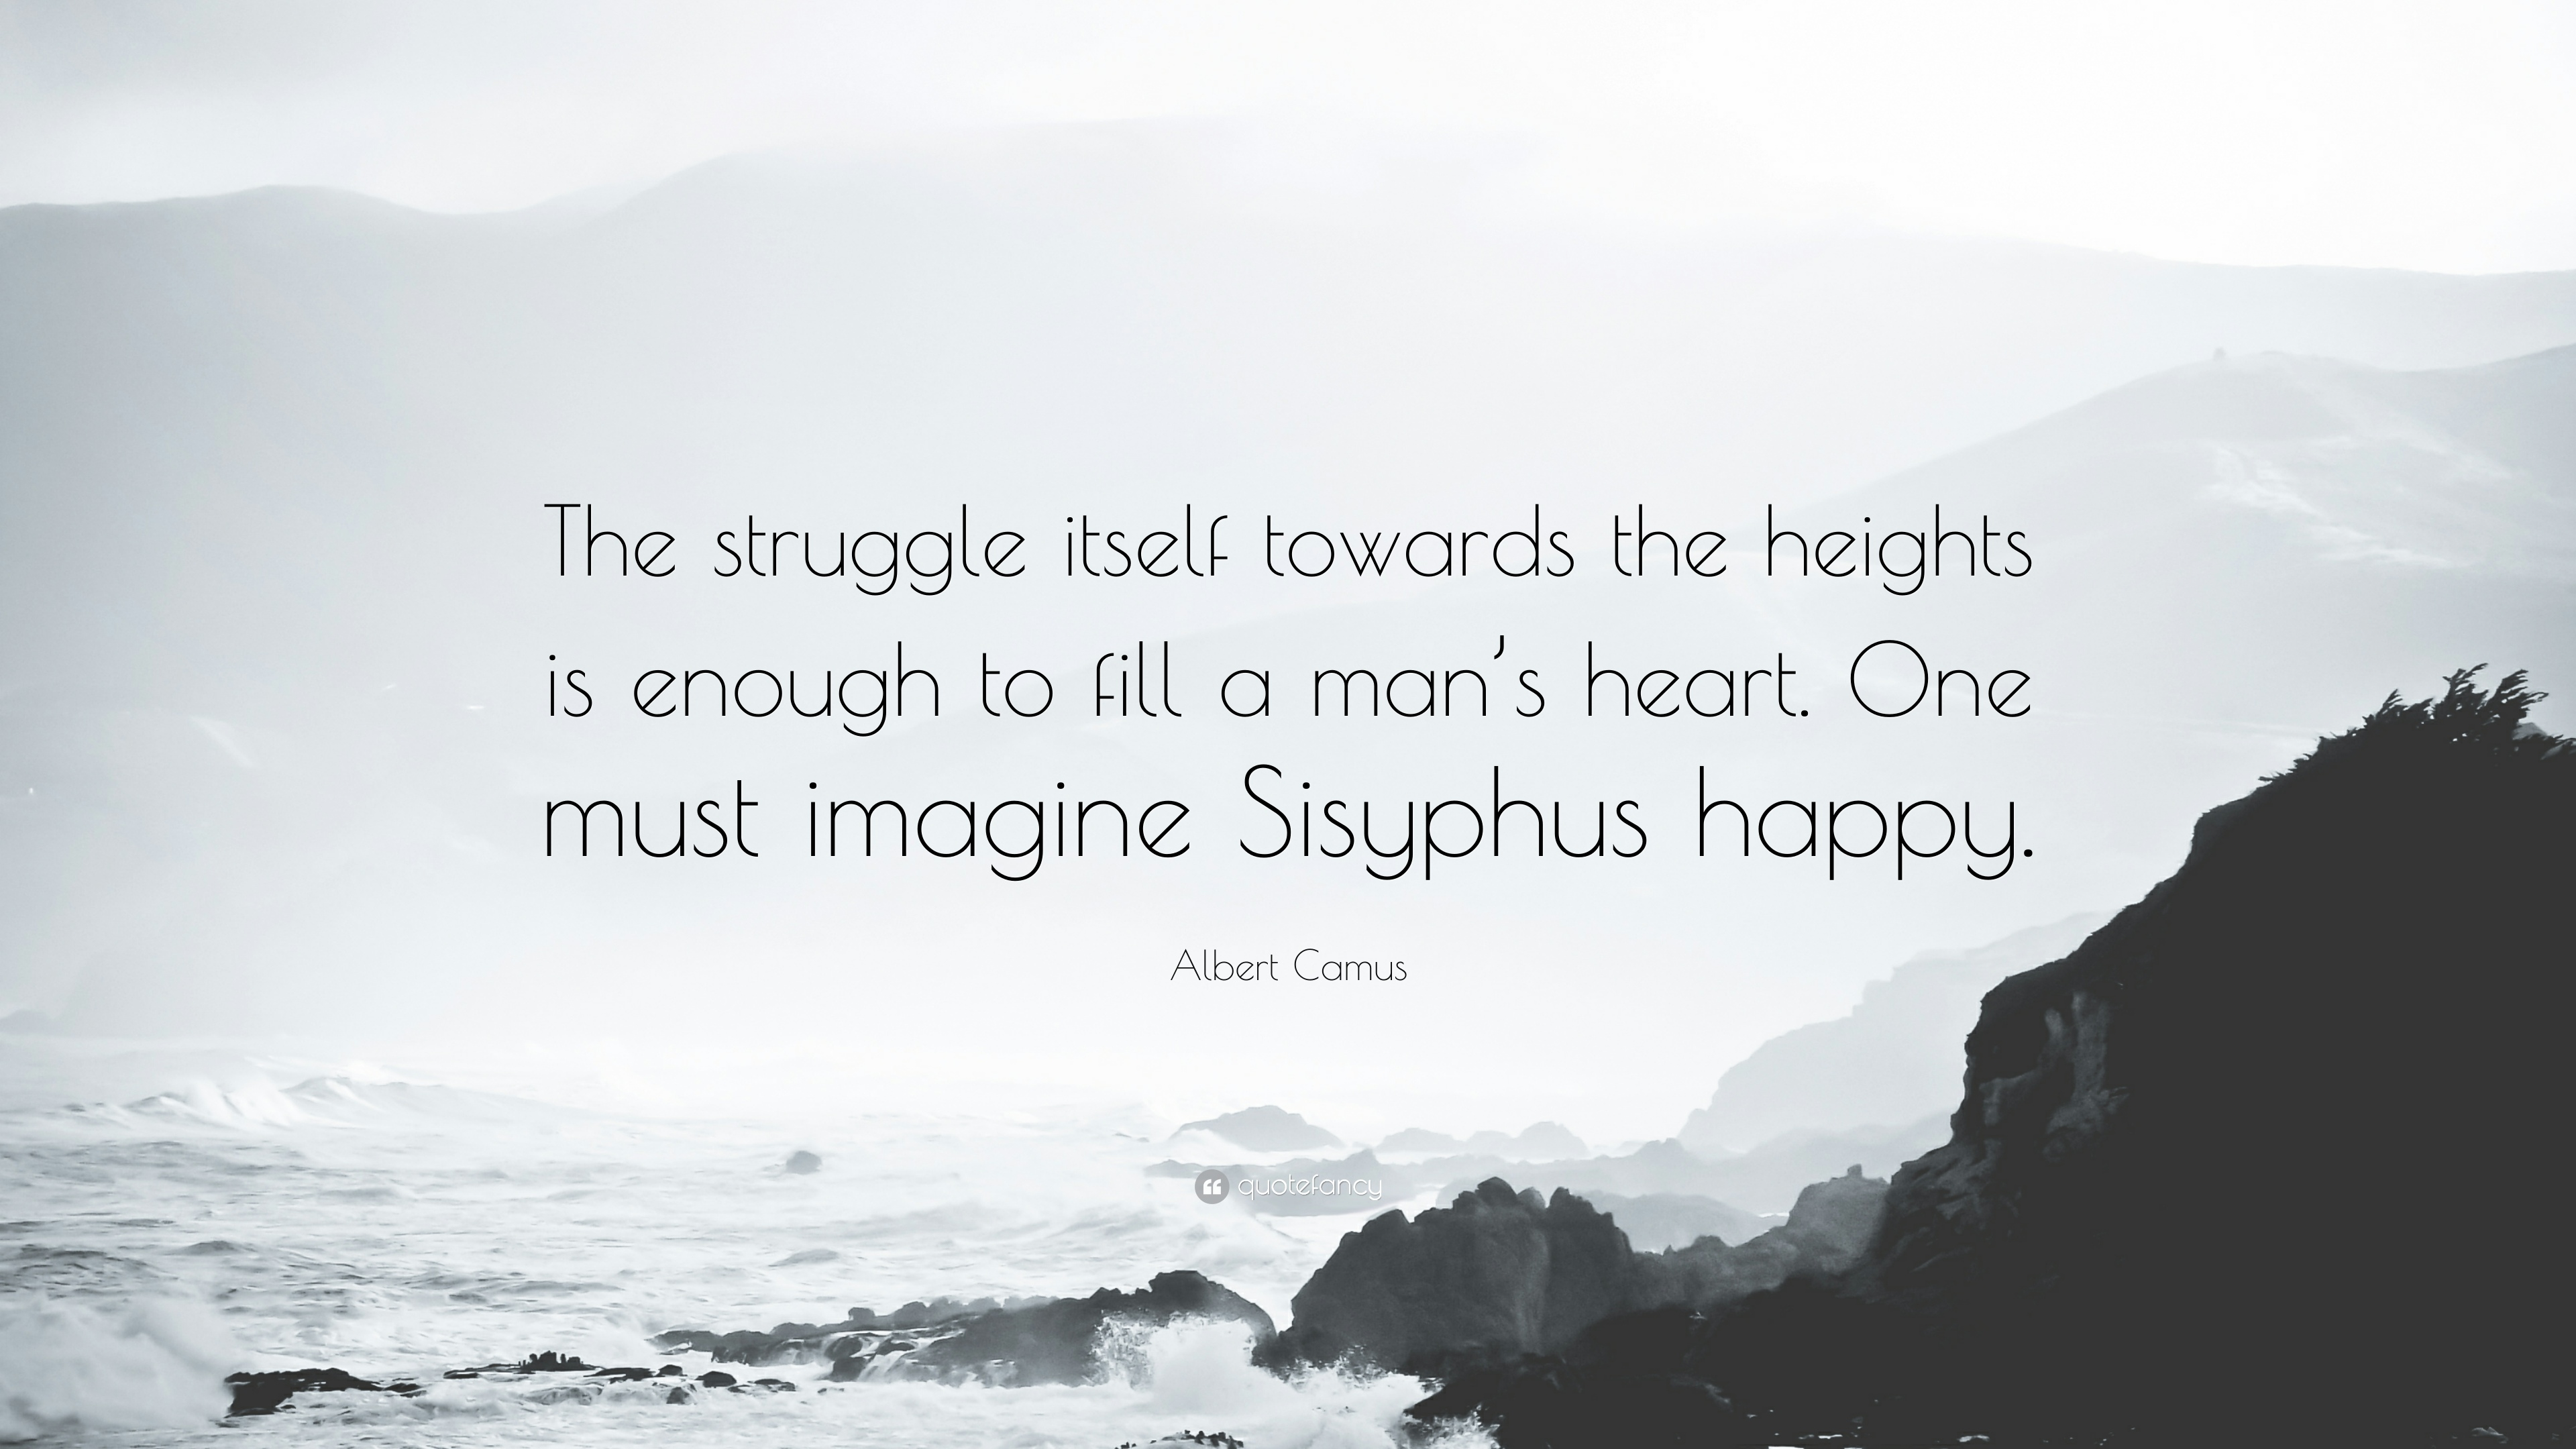 One Must Imagine Sisyphus Happy A Simple Quote